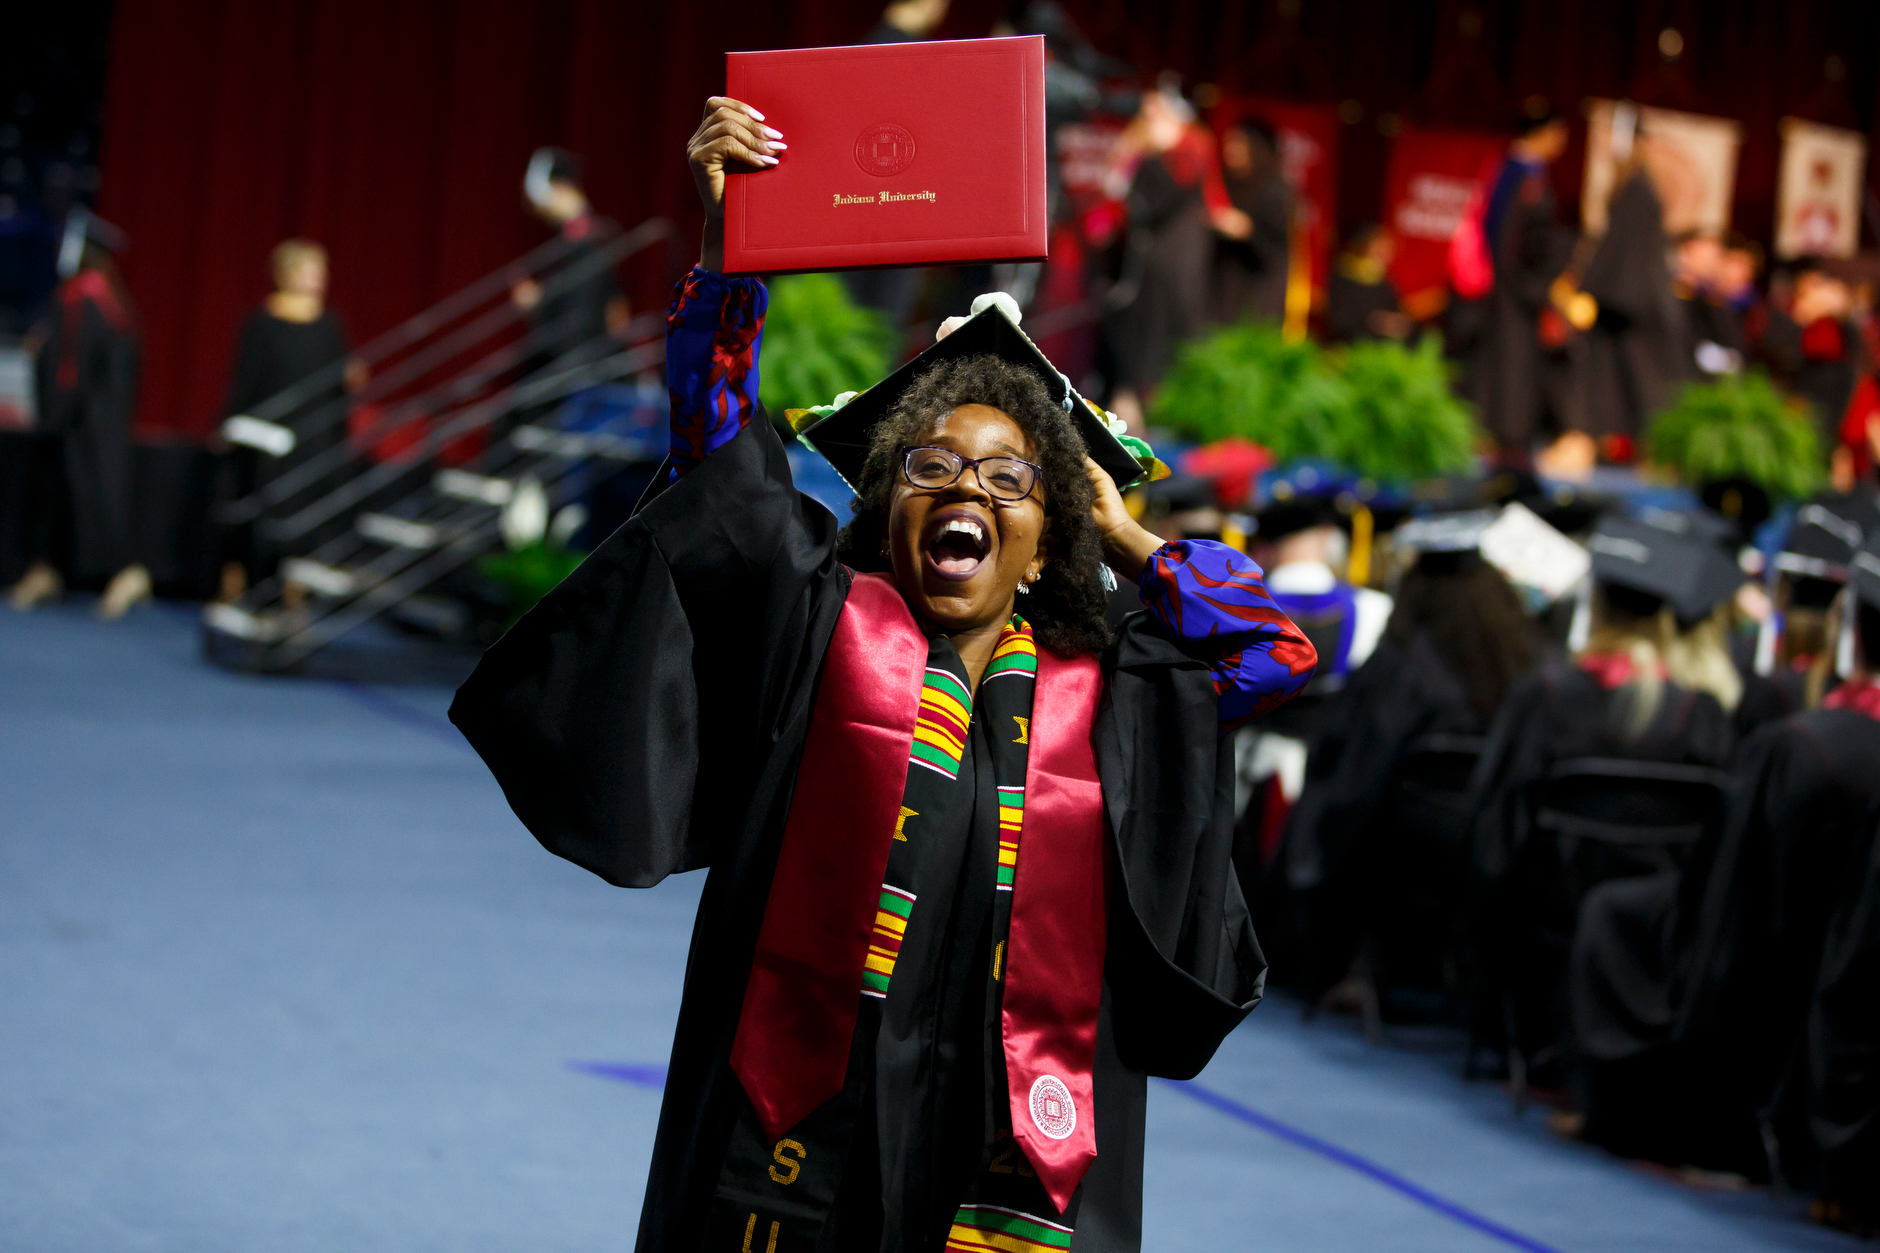 A graduate cheers after receiving her diploma at the Indiana University South Bend Commencement at the University of Notre Dame on Tuesday, May 7, 2019. (James Brosher/Indiana University)